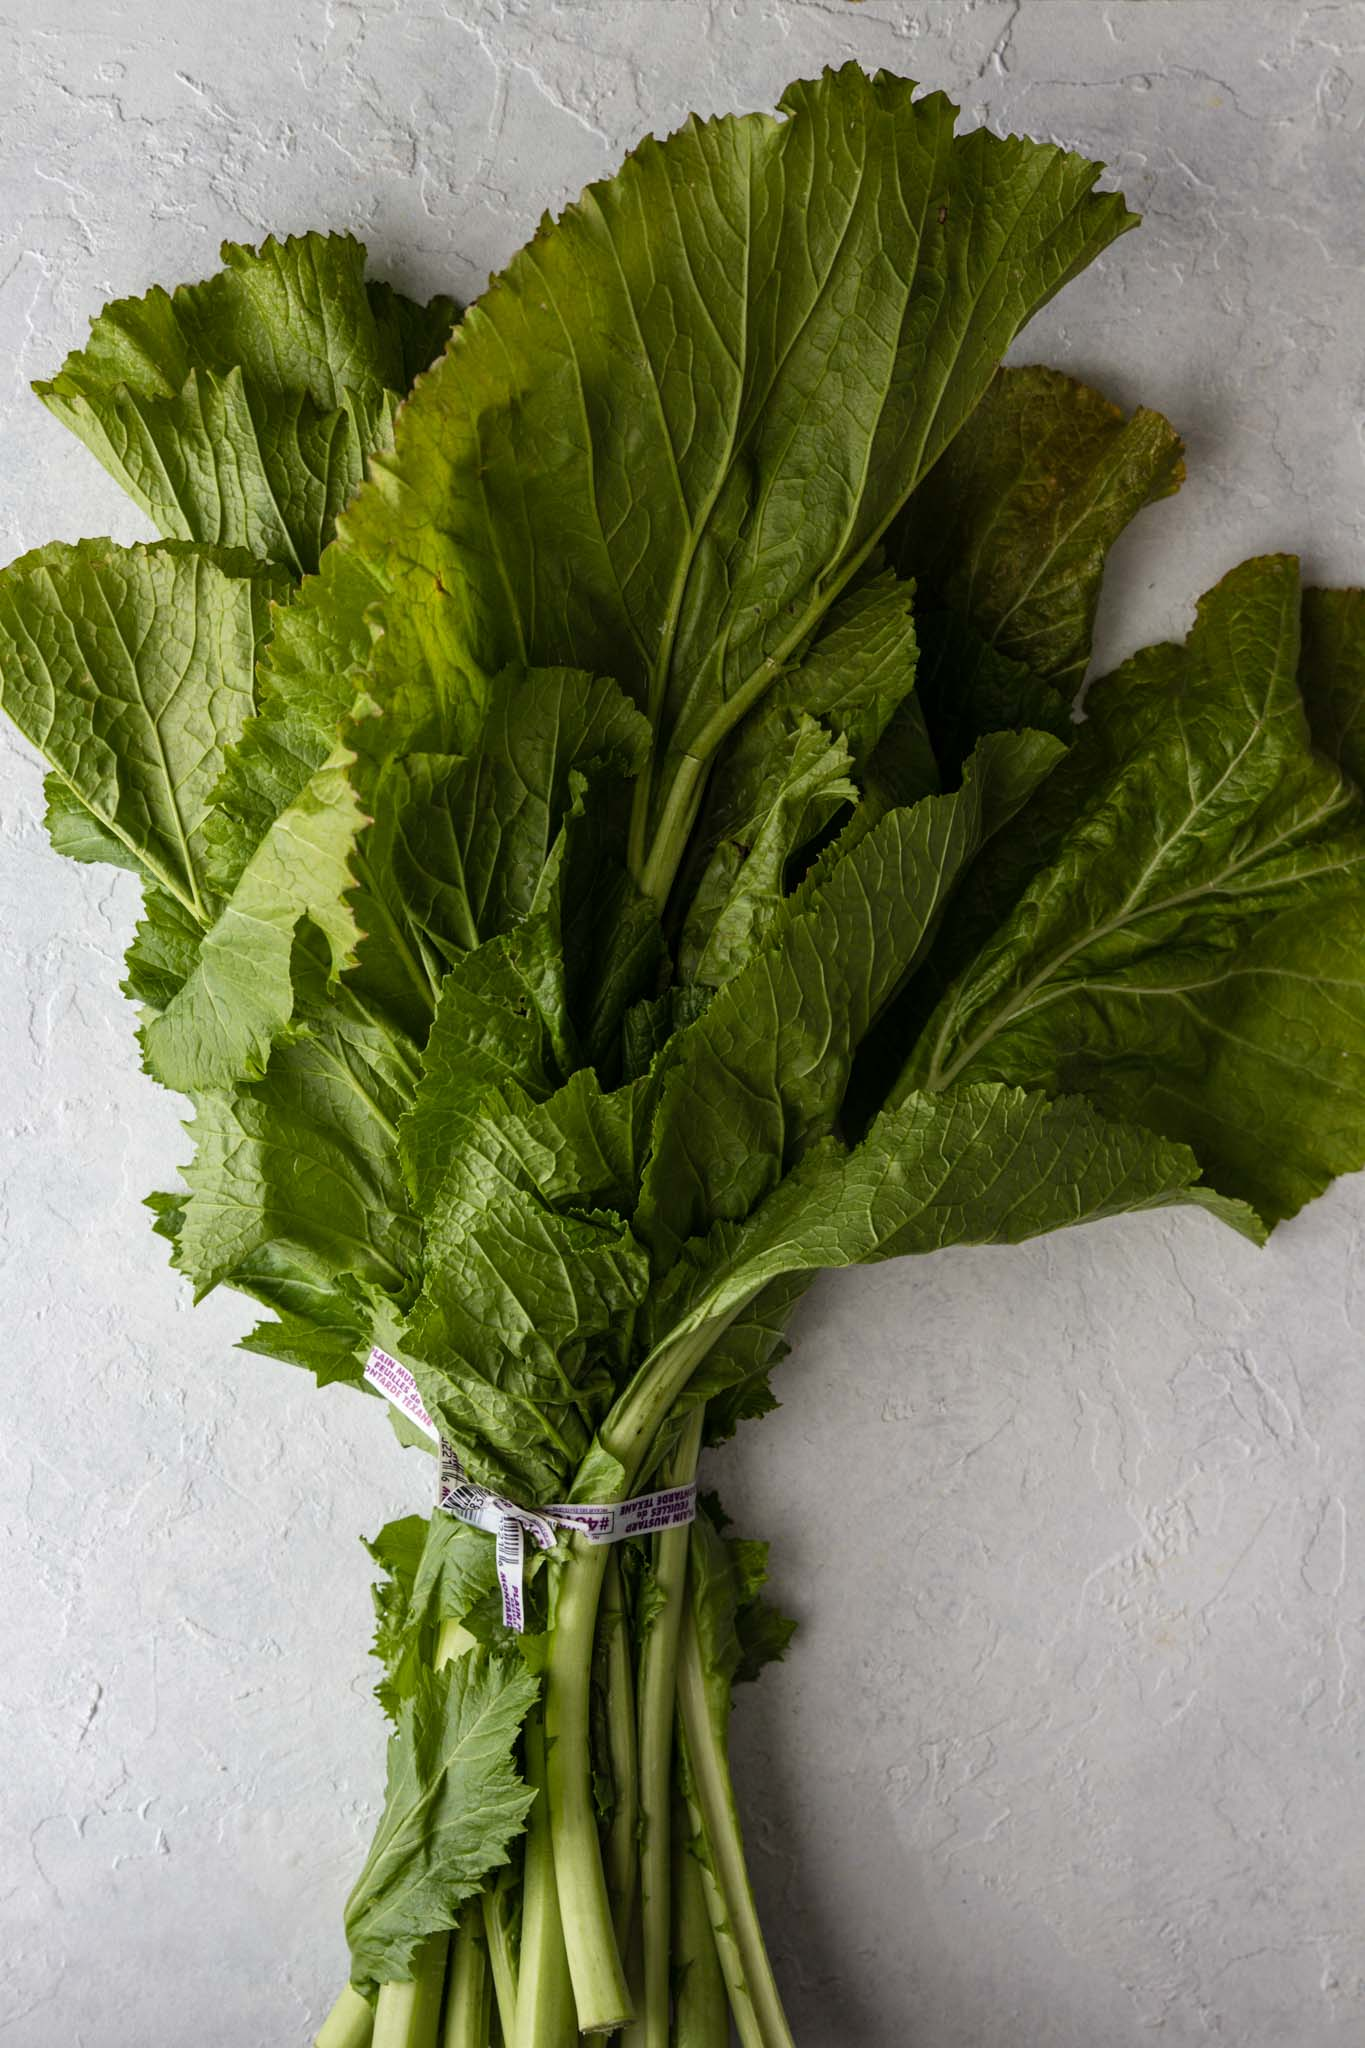 One bunch of Mustard Greens on a white surface